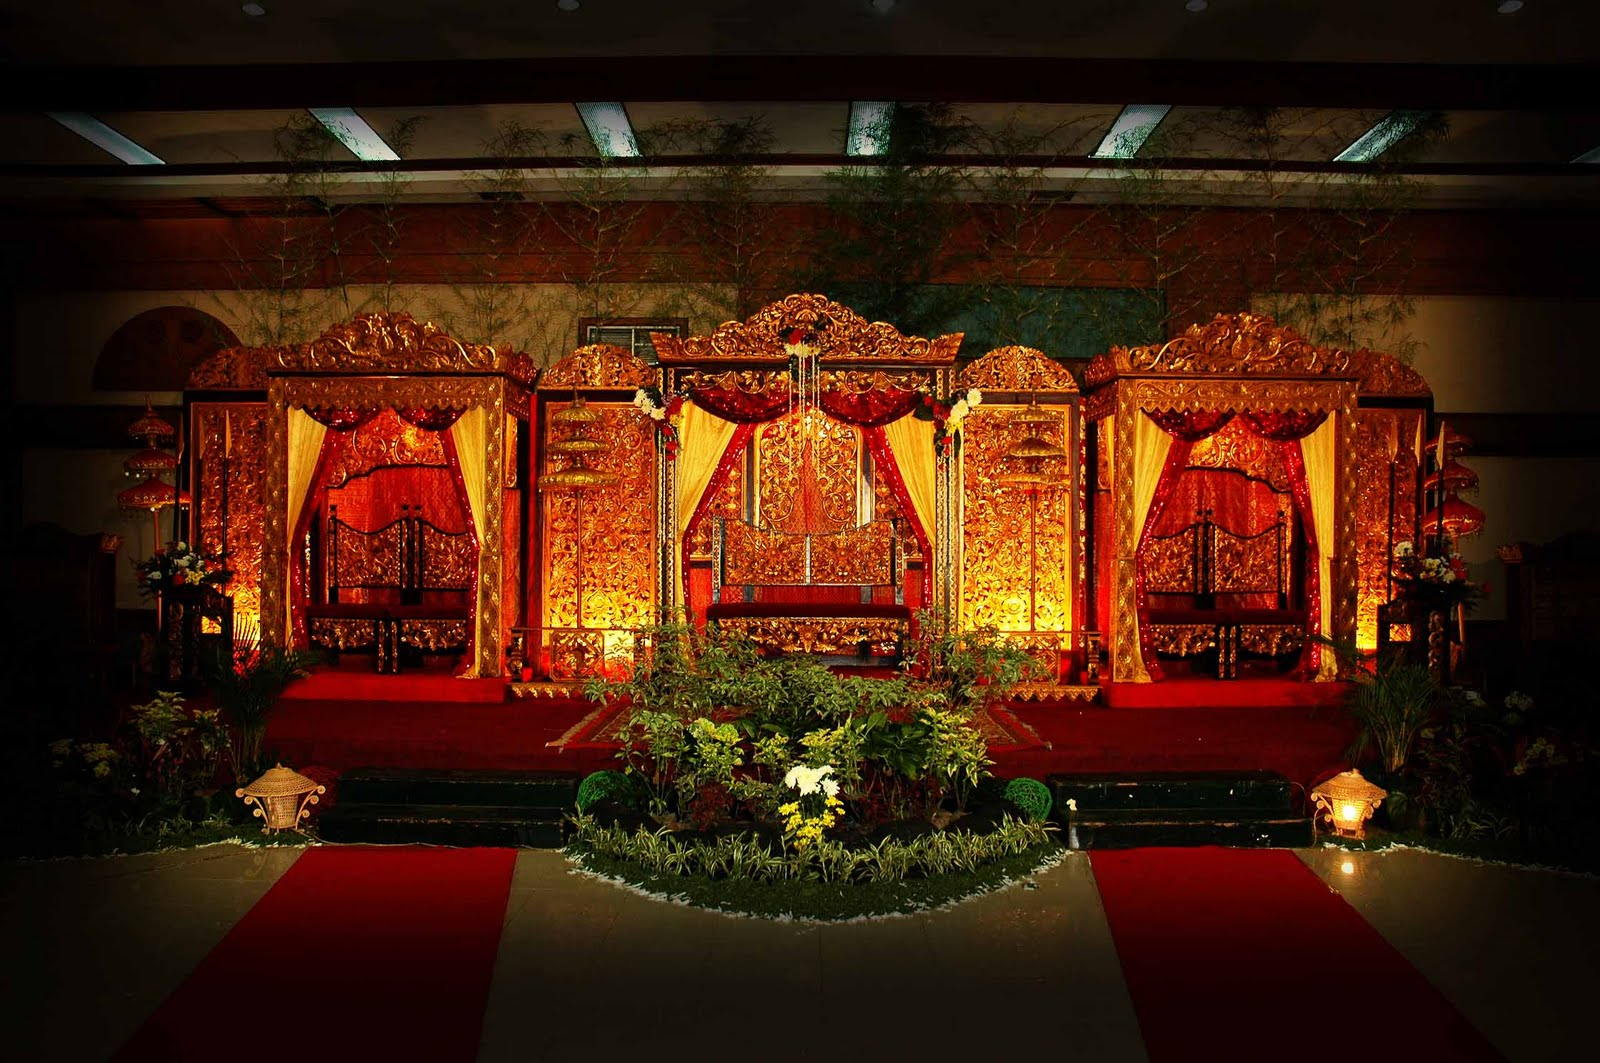 wallpaper backgrounds indian wedding stage decoration ForBackground Stage Decoration